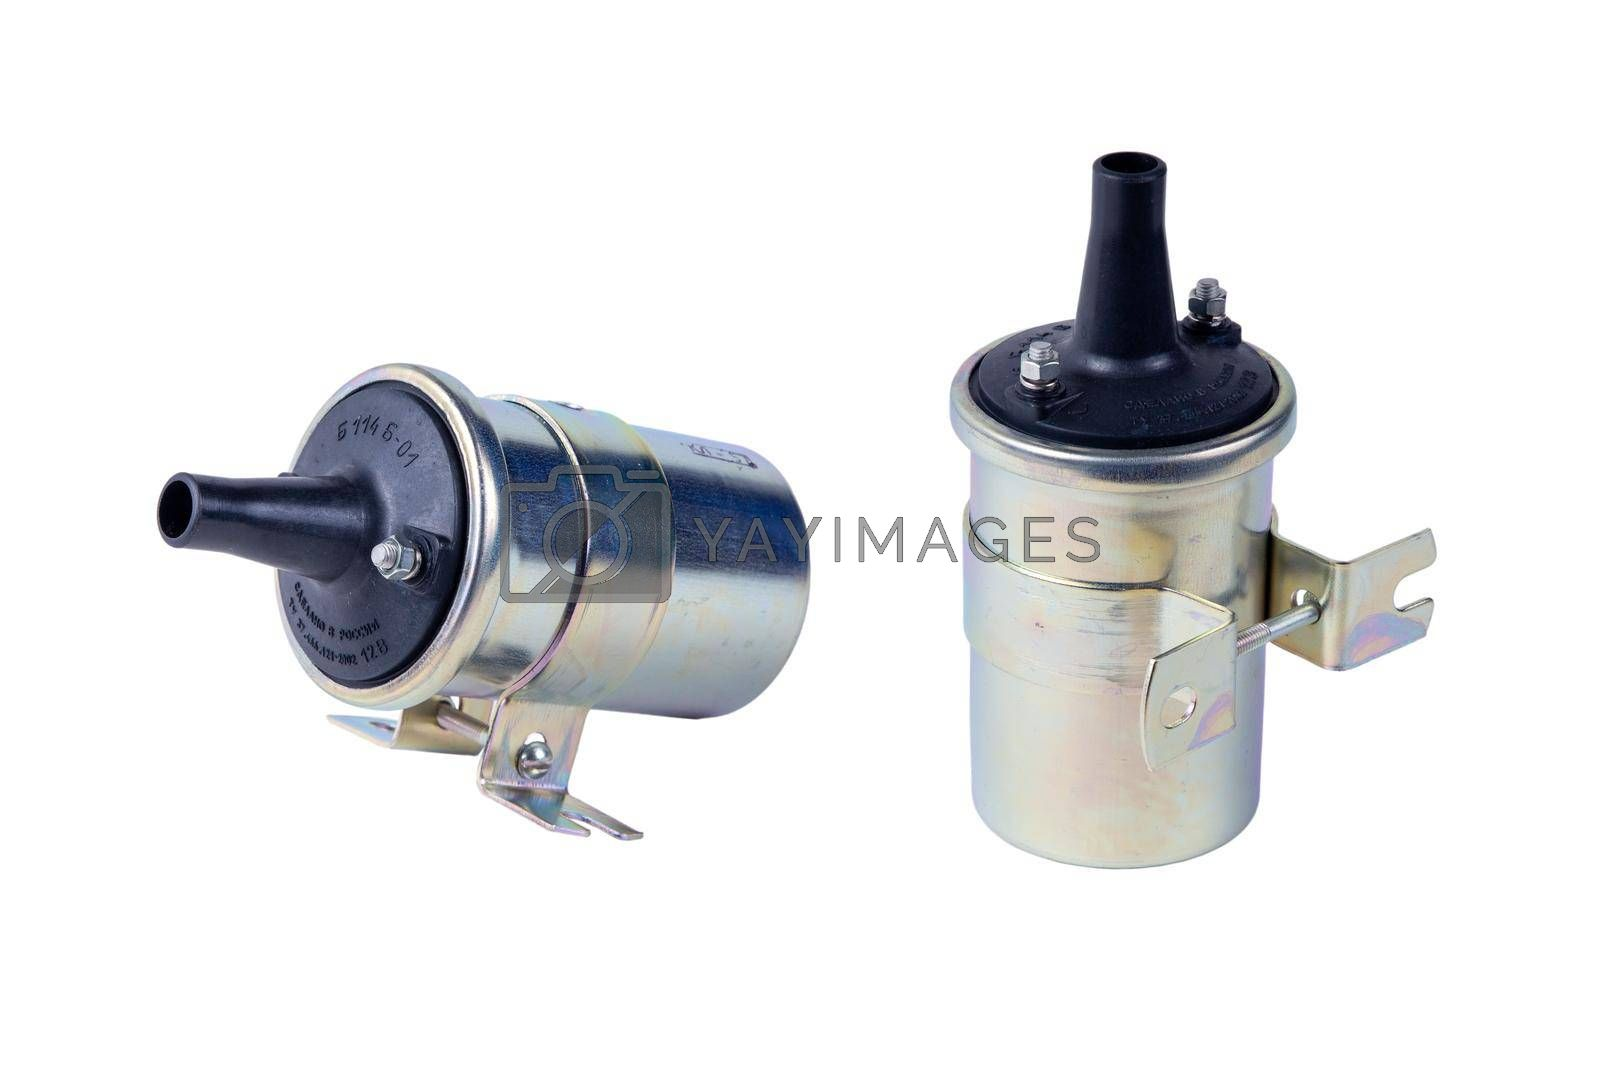 new Pump for the heating system, isolated on a white background. Spare parts